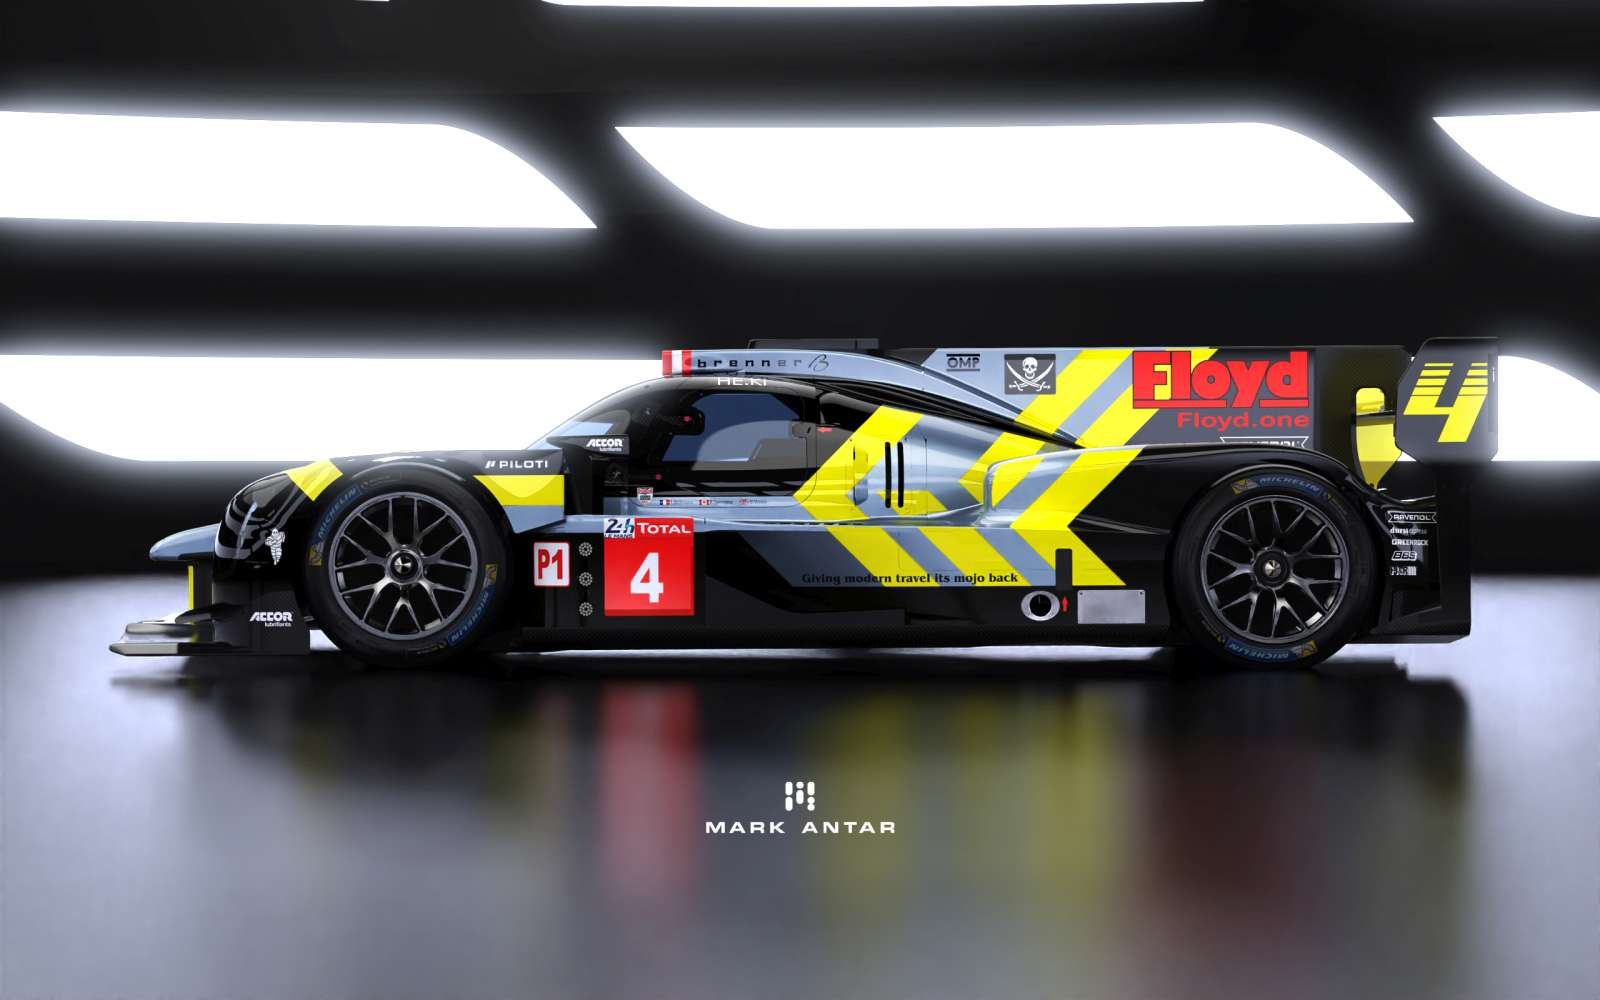 ByKOLLES unveils new car livery for the 24 Hours of Le Mans 2020